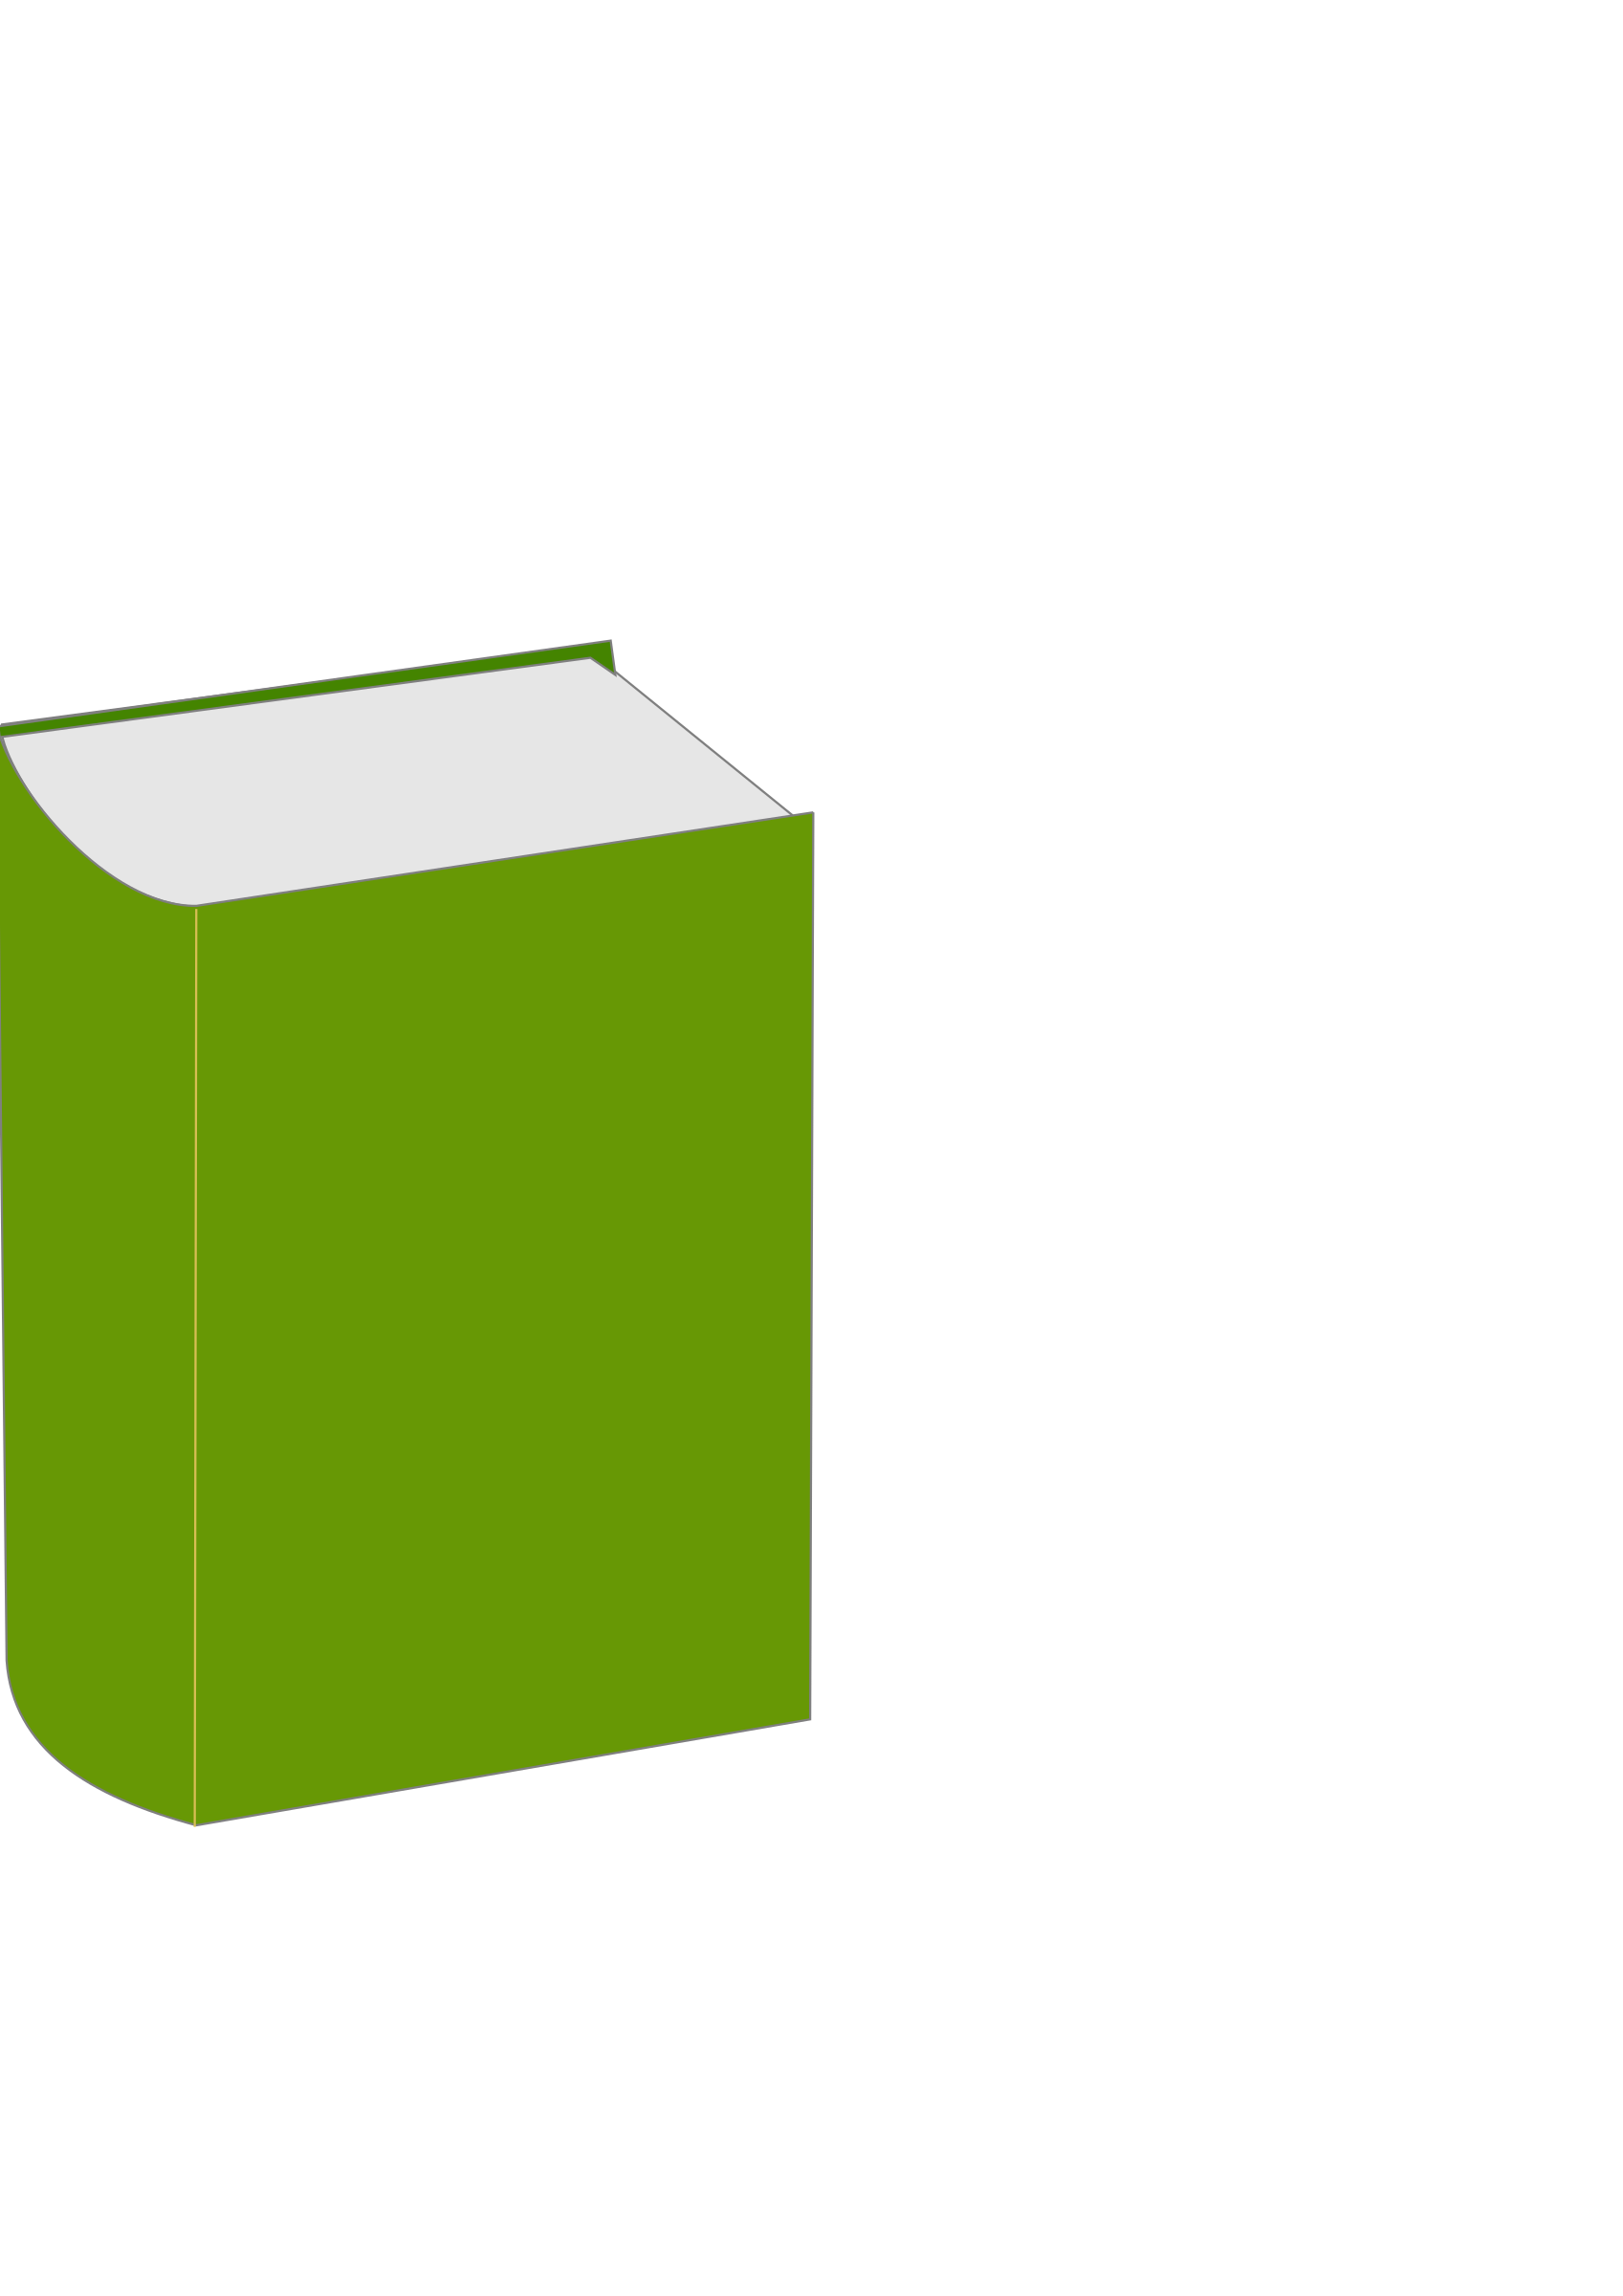 Green Book by rfc1394b